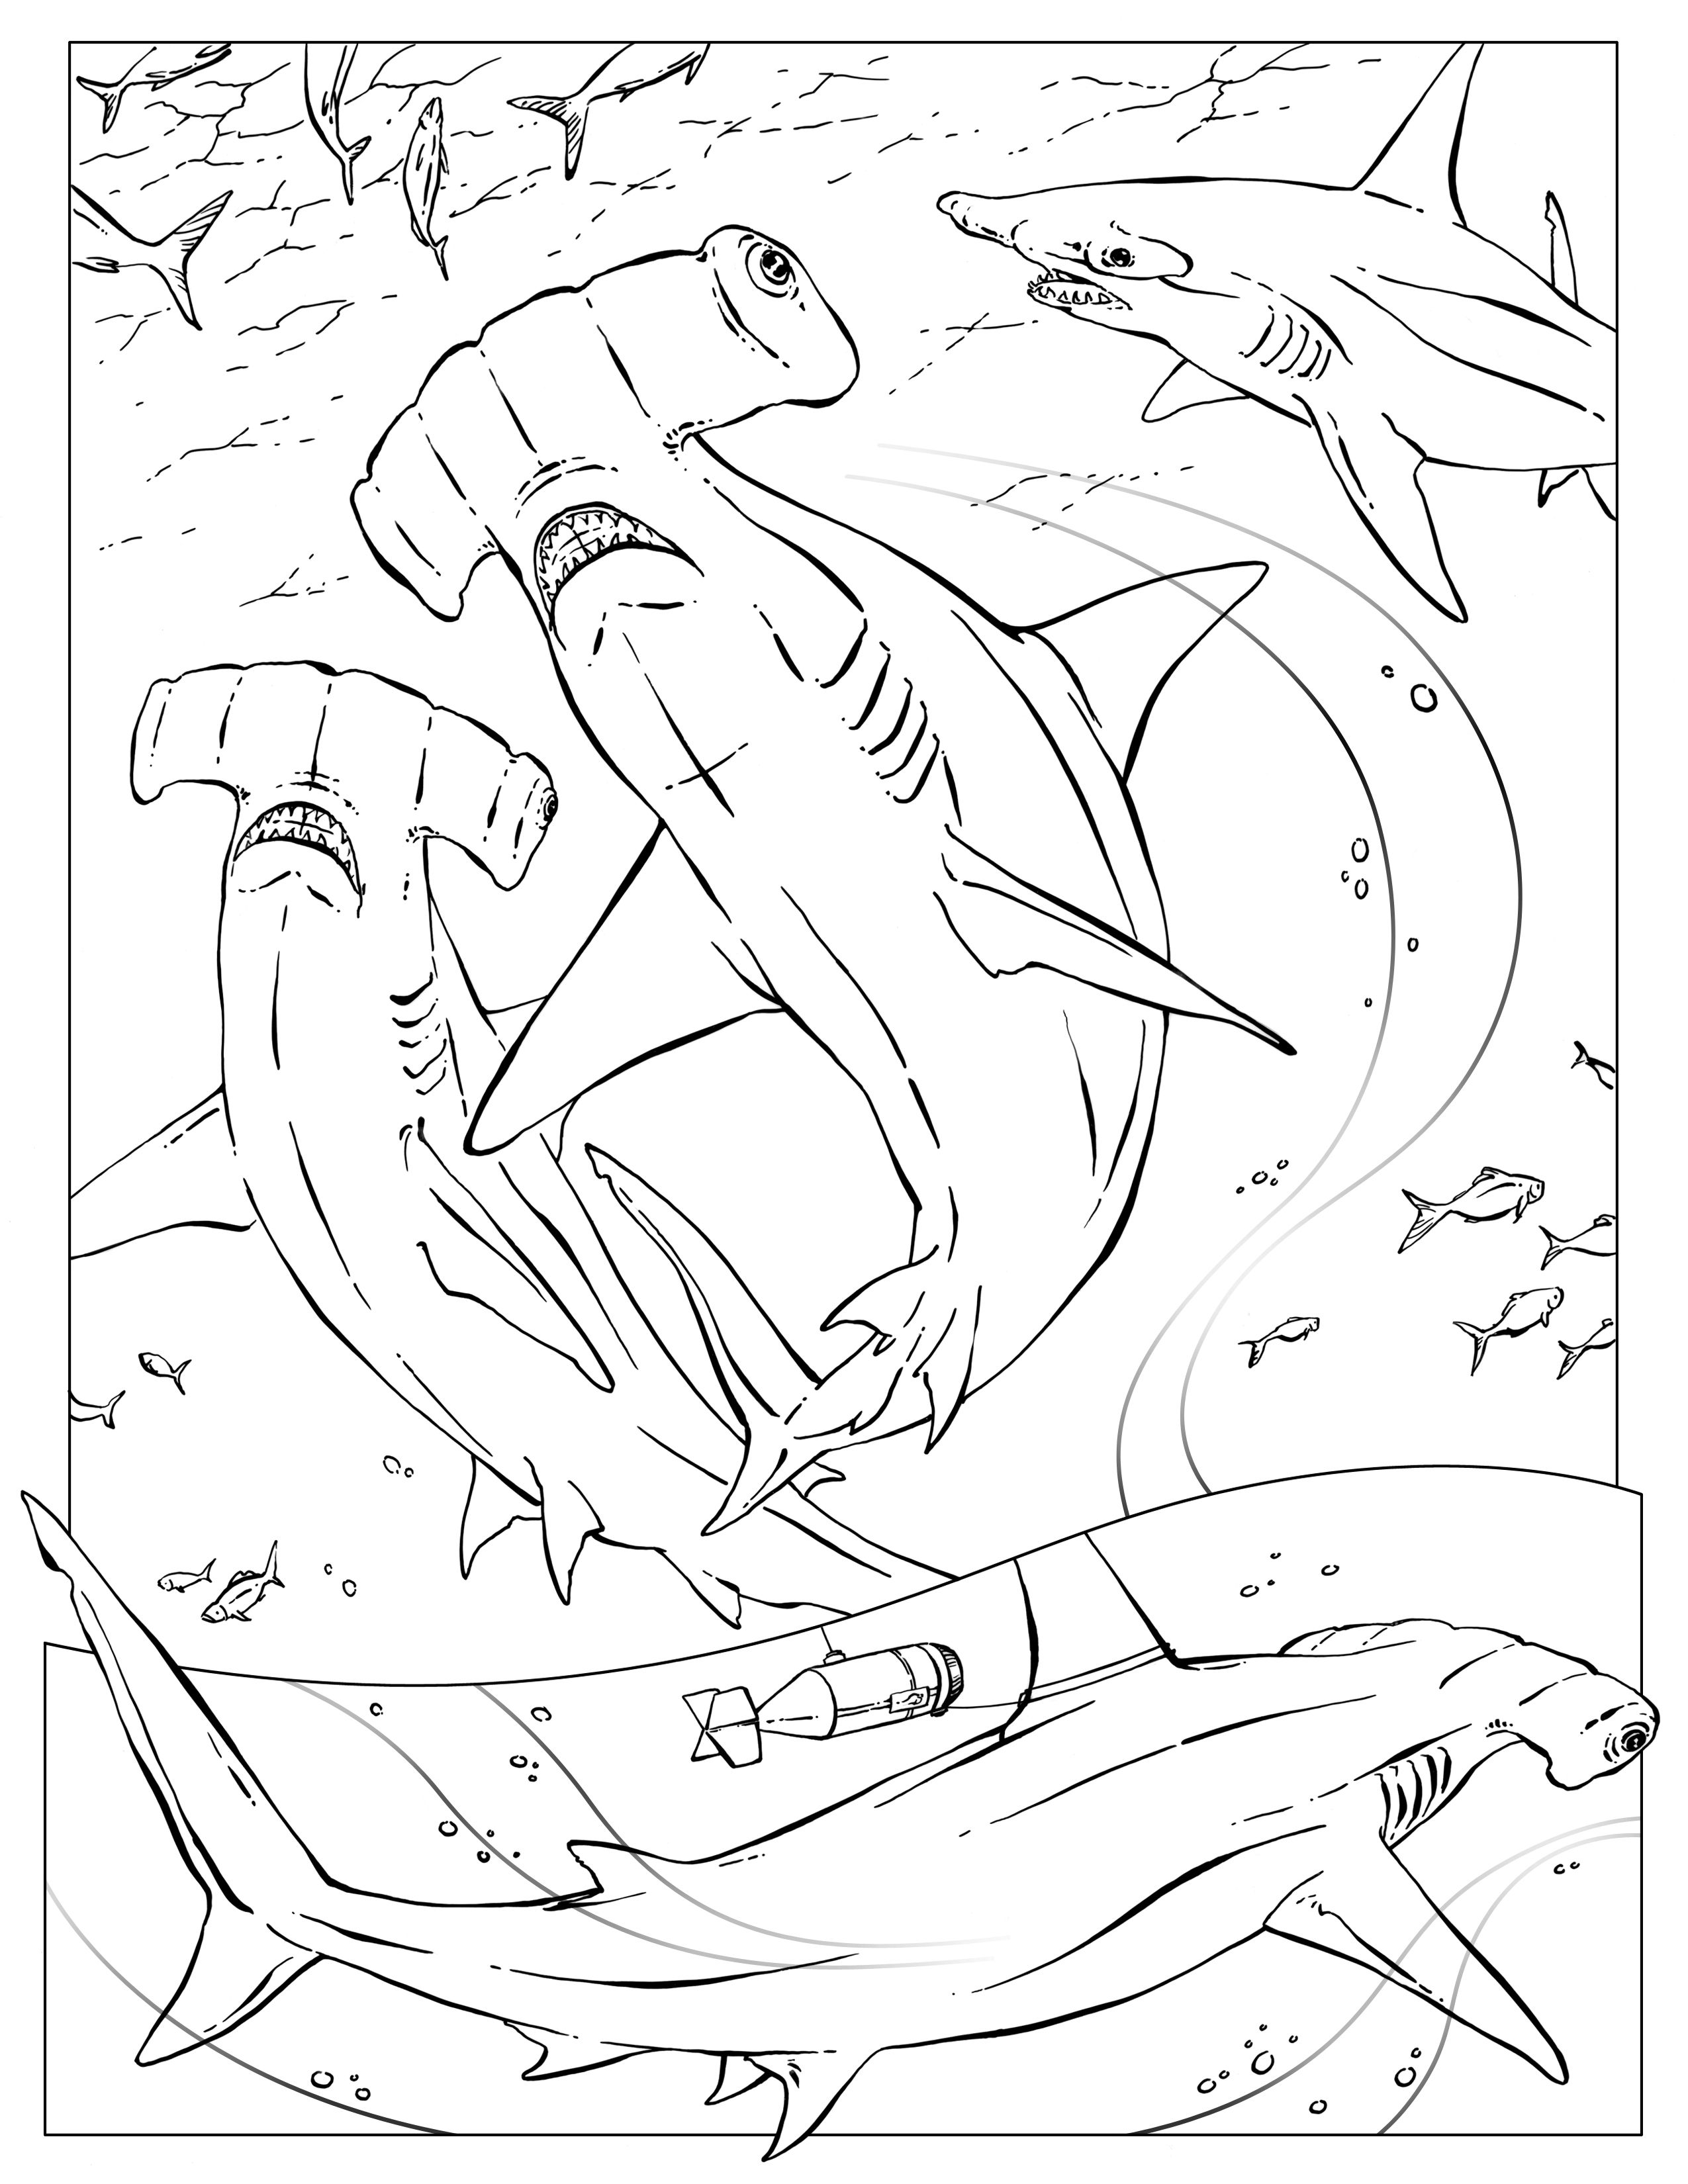 shark coloring | Marine life coloring pages | Pinterest | Shark ...